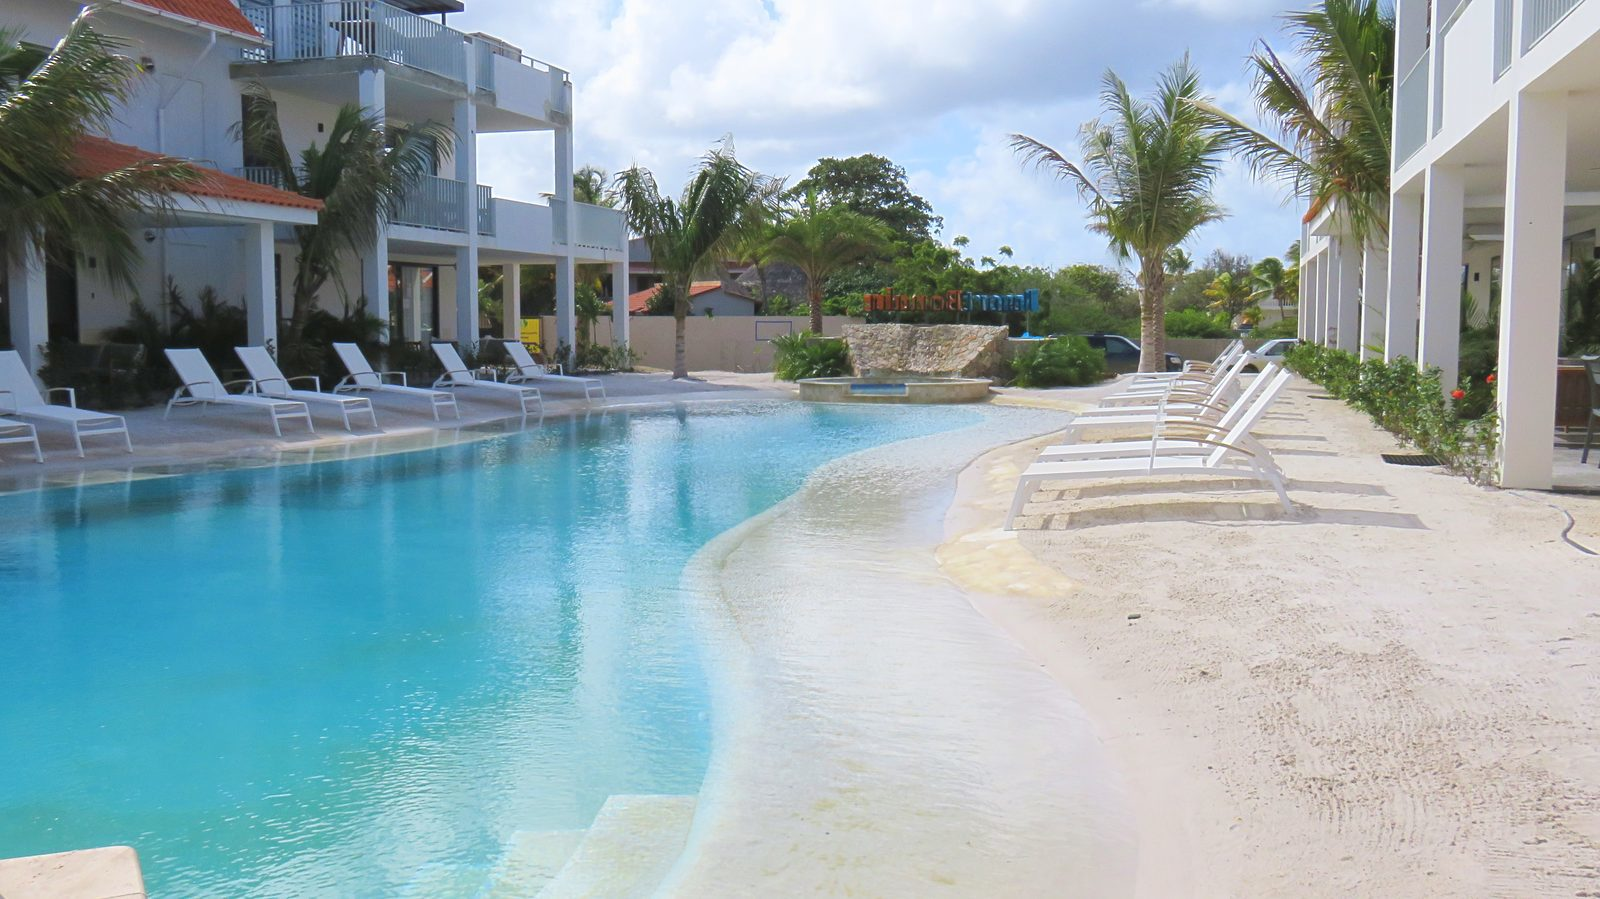 Explore the swimming pool at Resort Bonaire. This beach pool is where you'll be able to relax and enjoy the weather. The kids will have a great time as well.